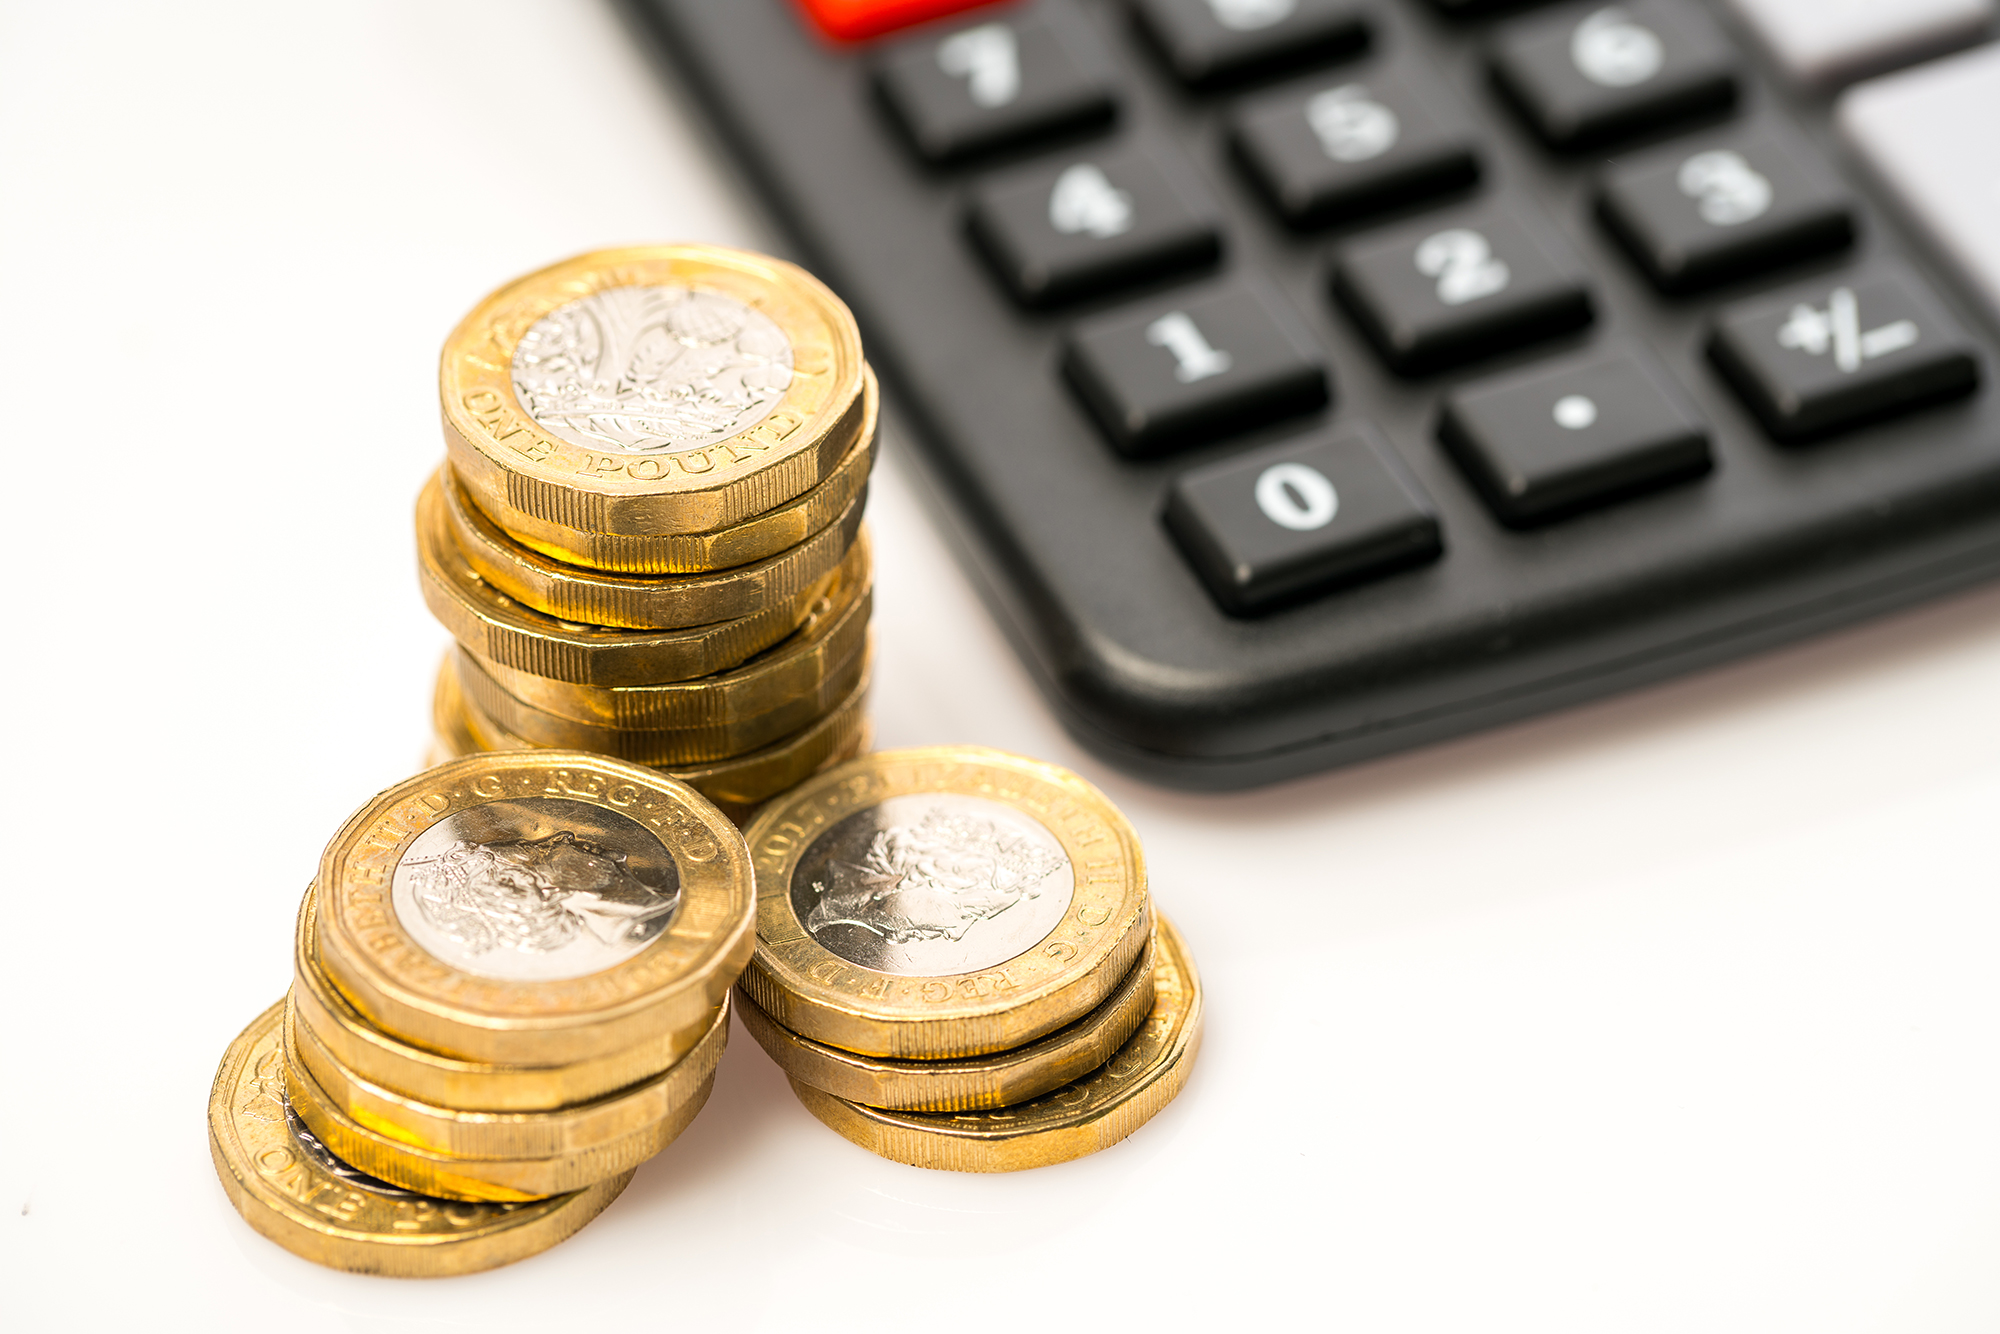 Pound coins next to a calculator. (Image: Shutterstock)